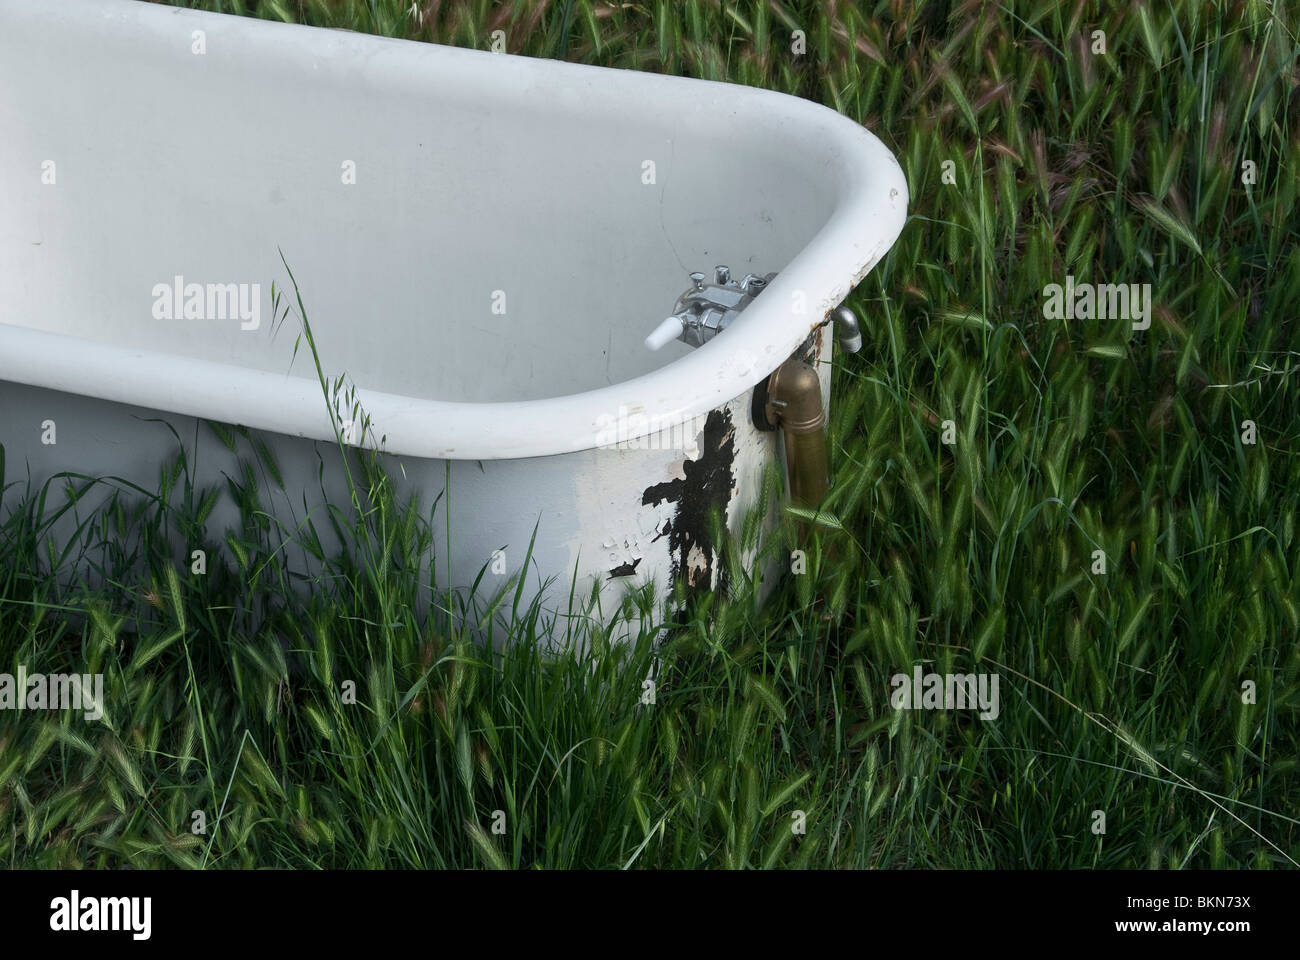 A bathtub sits in a grass field. - Stock Image